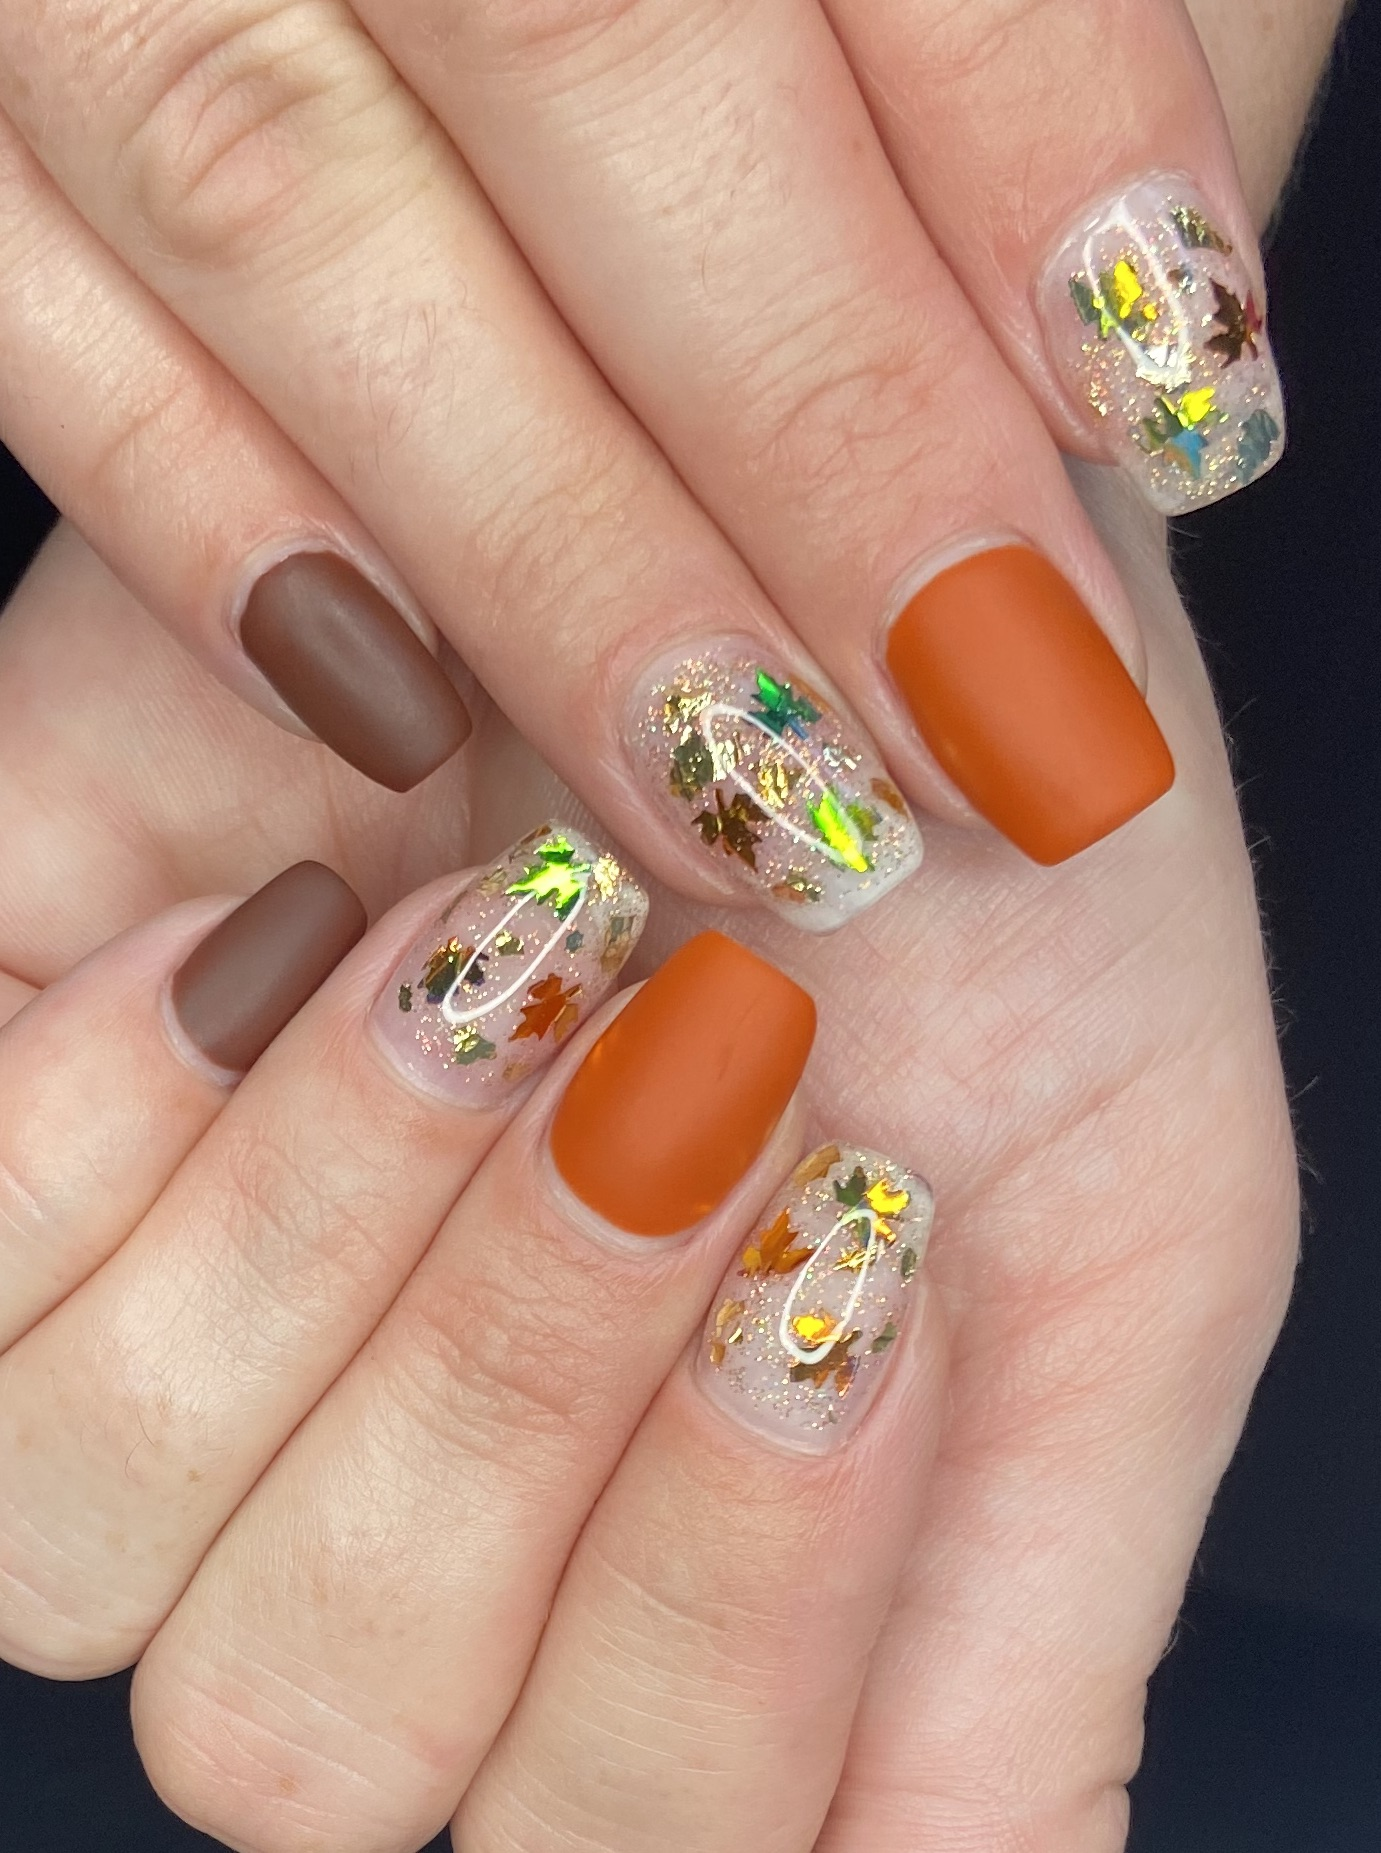 Autumn Leaves and Glitter Nail Design